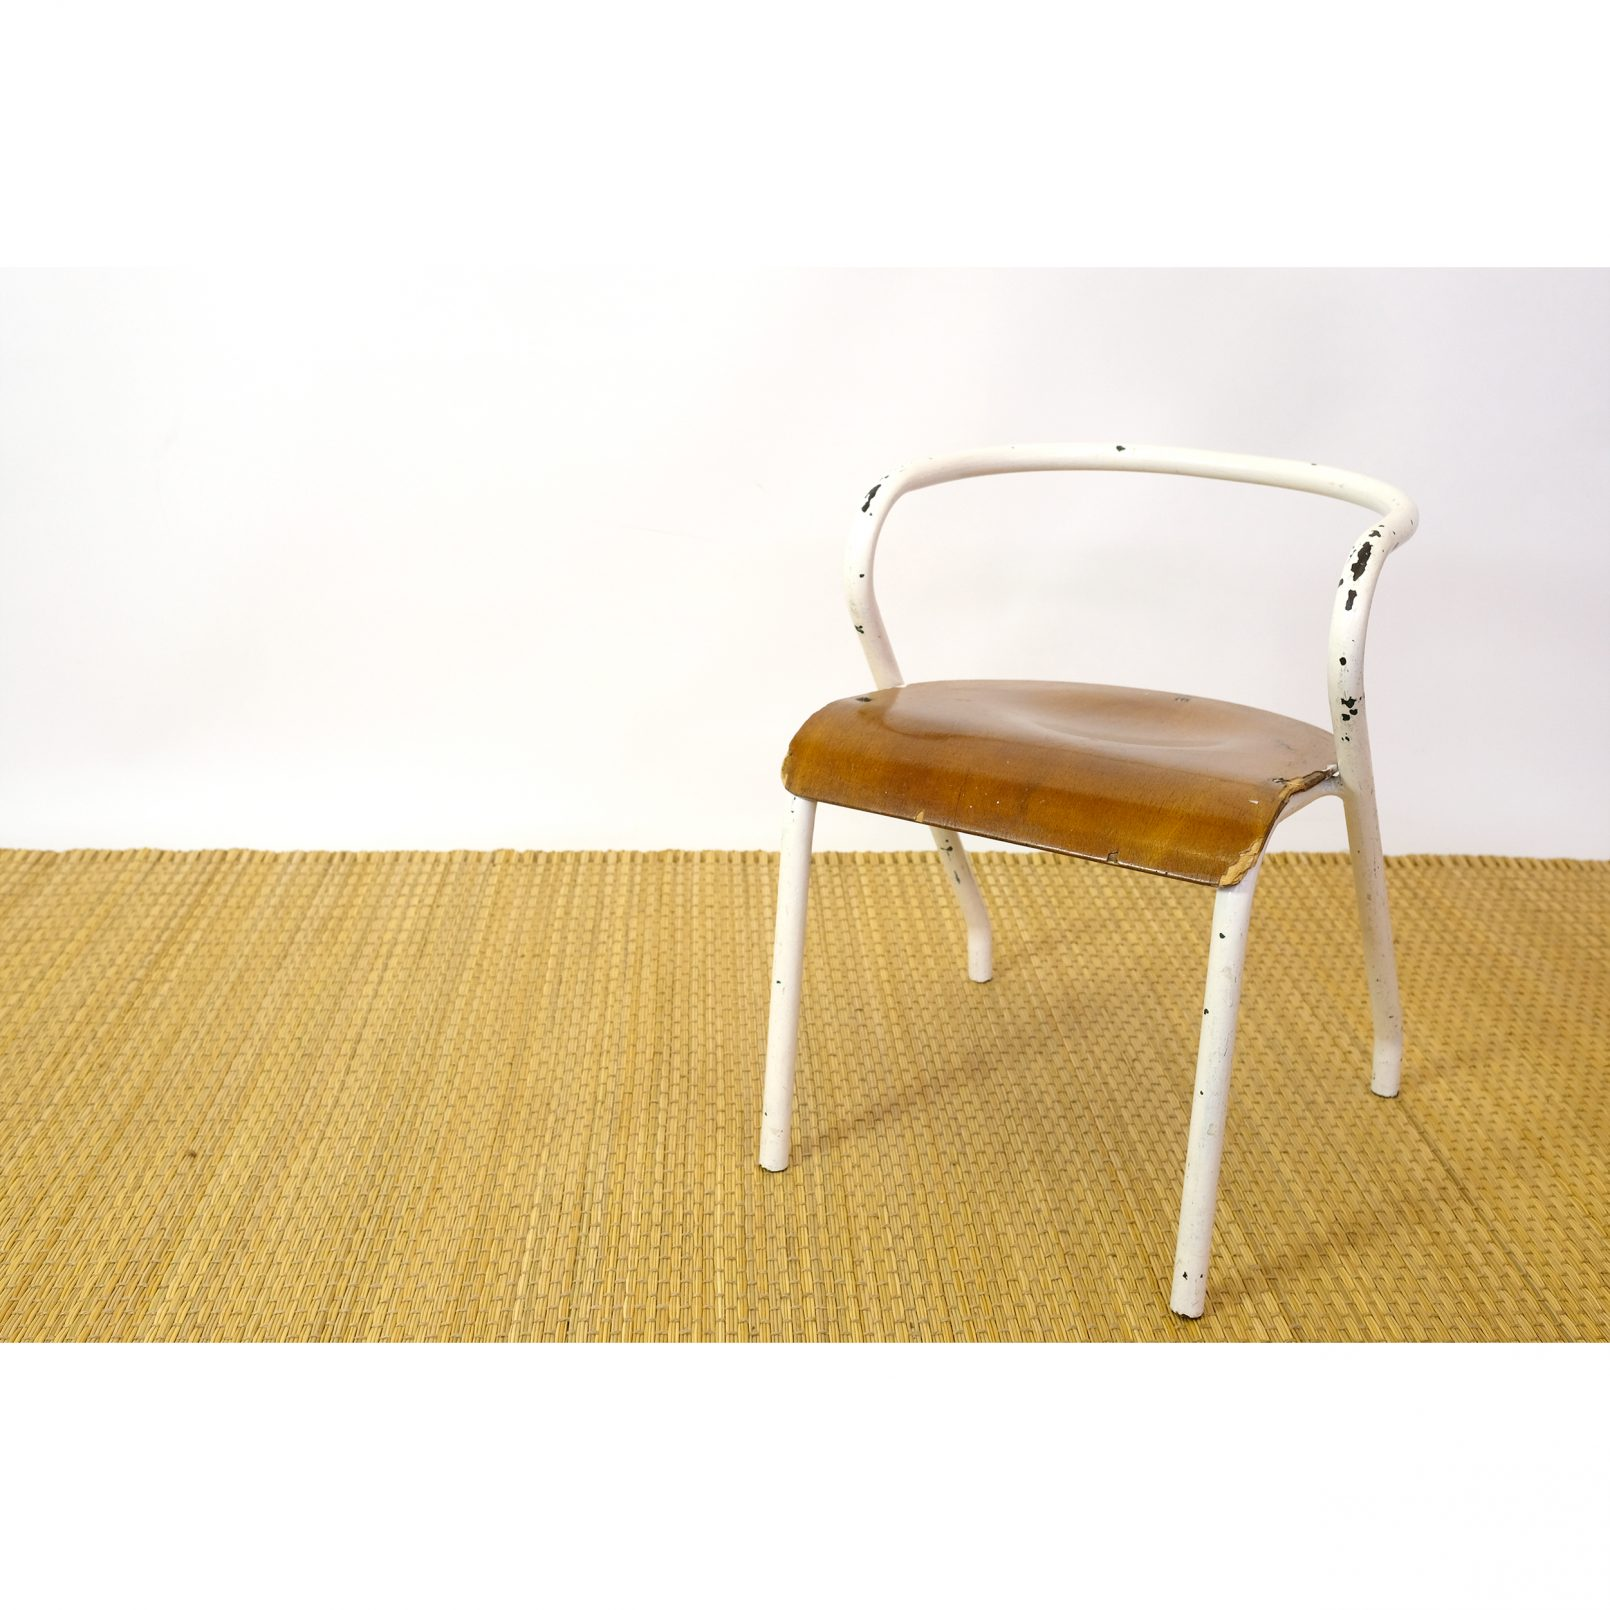 Jacques Hitier, Mullca 300 child's chair, 1949.